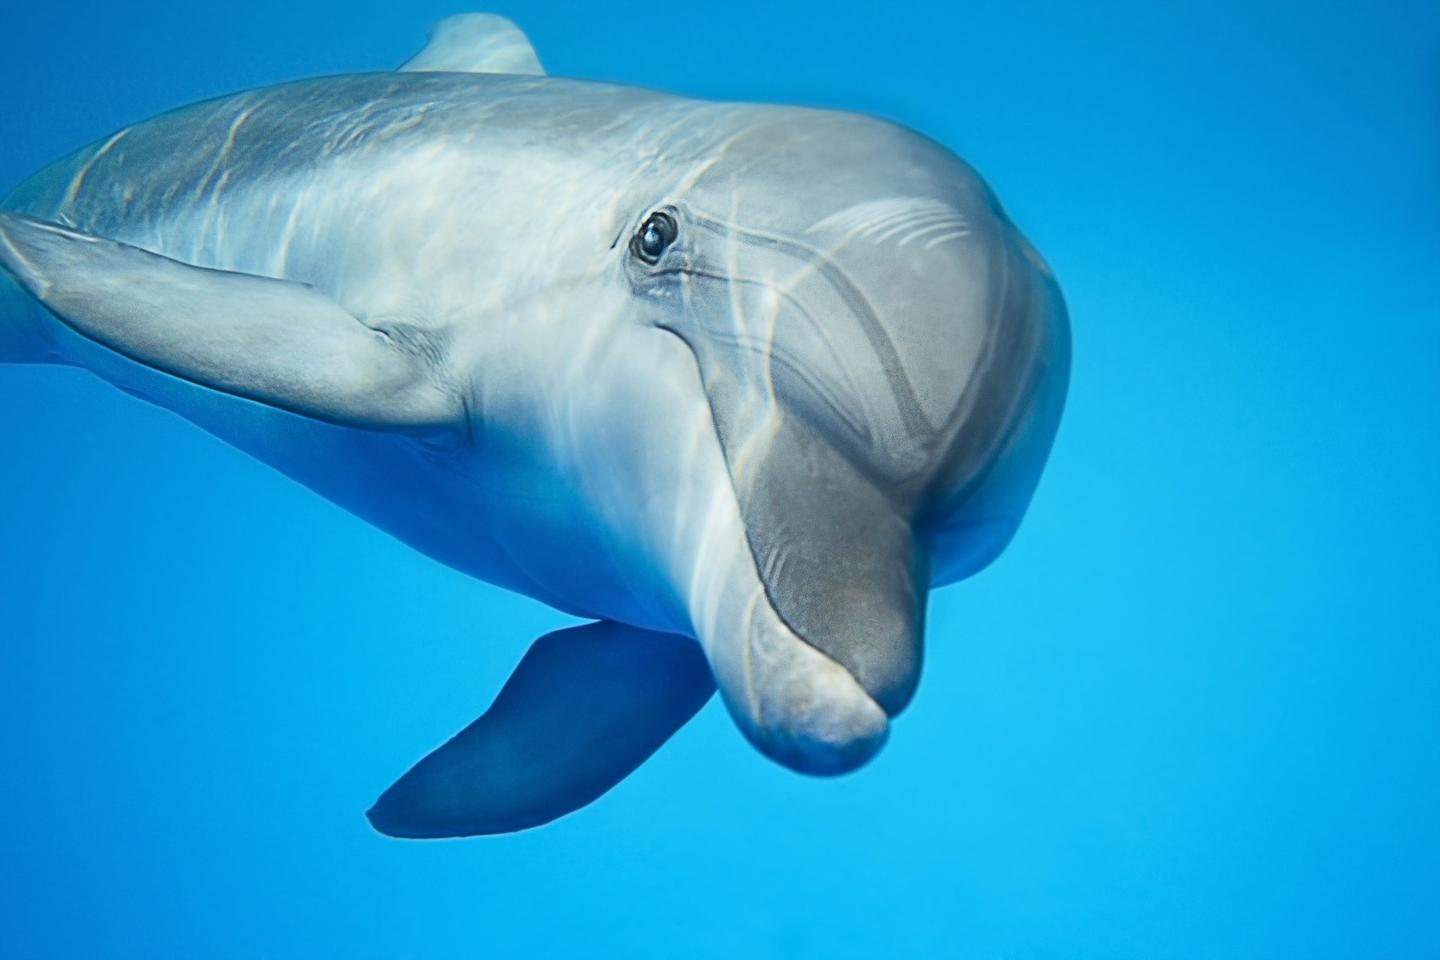 The telltale signs of Alzheimer's have been detected in the brains of wild dolphins for the first time